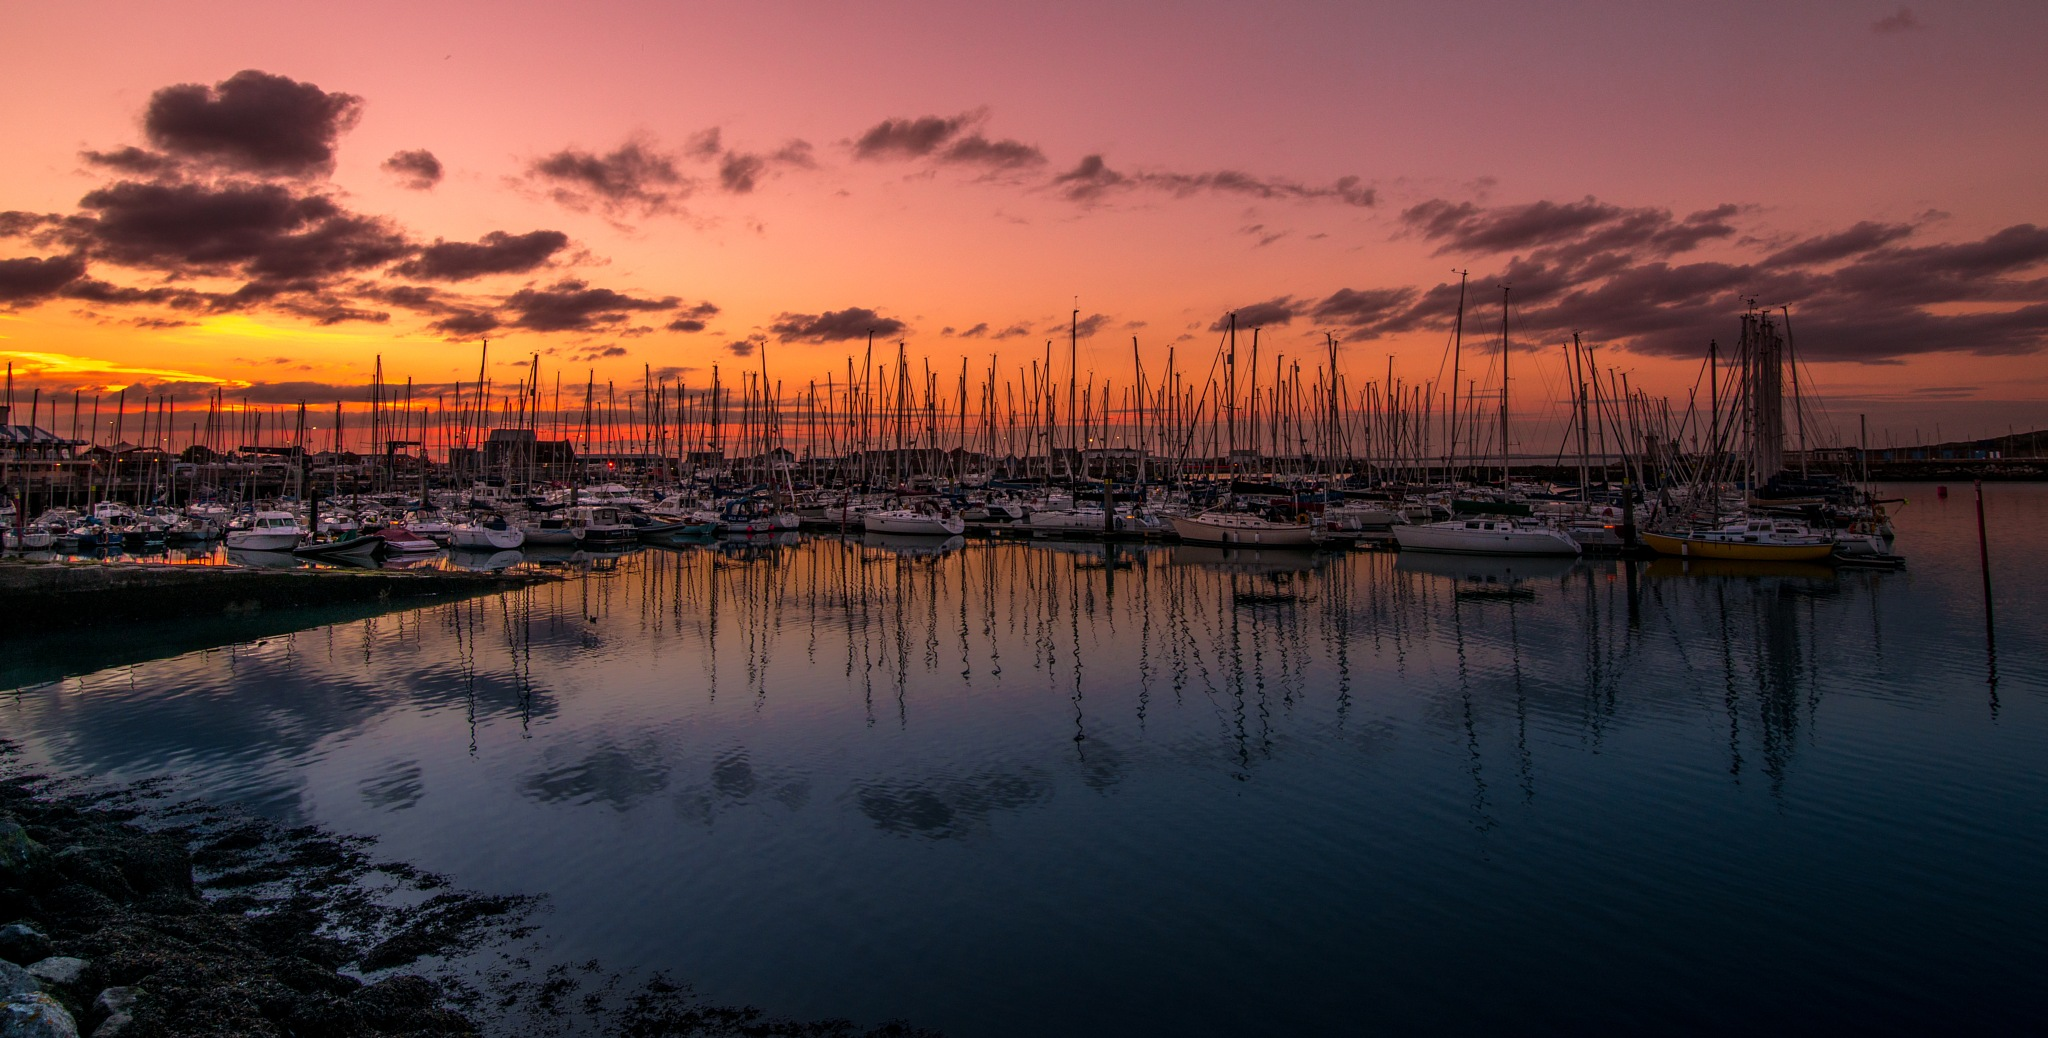 Reflections by Marian Iustin Farcas